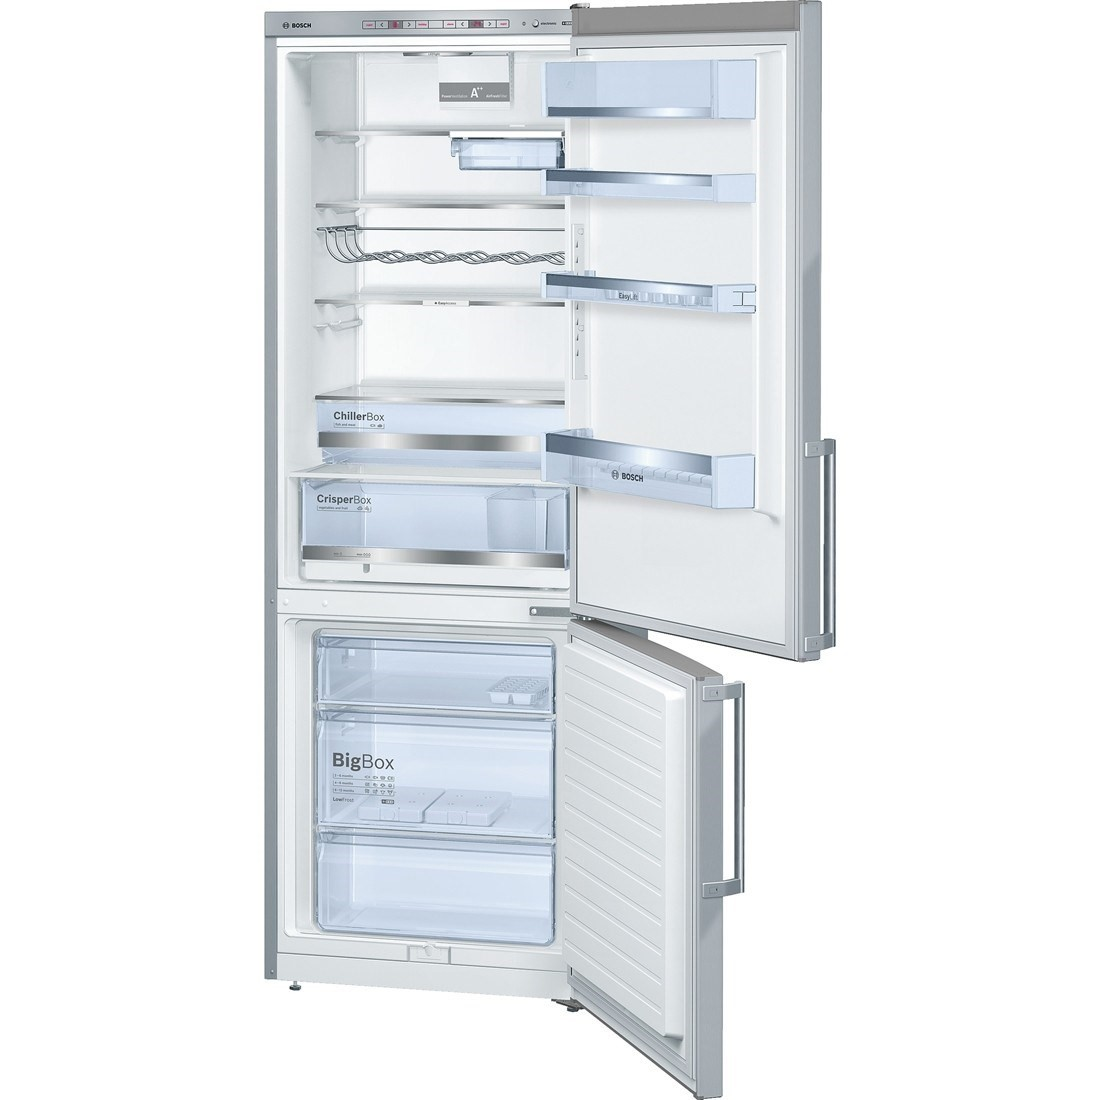 KGE49BI30G Fridge freezer